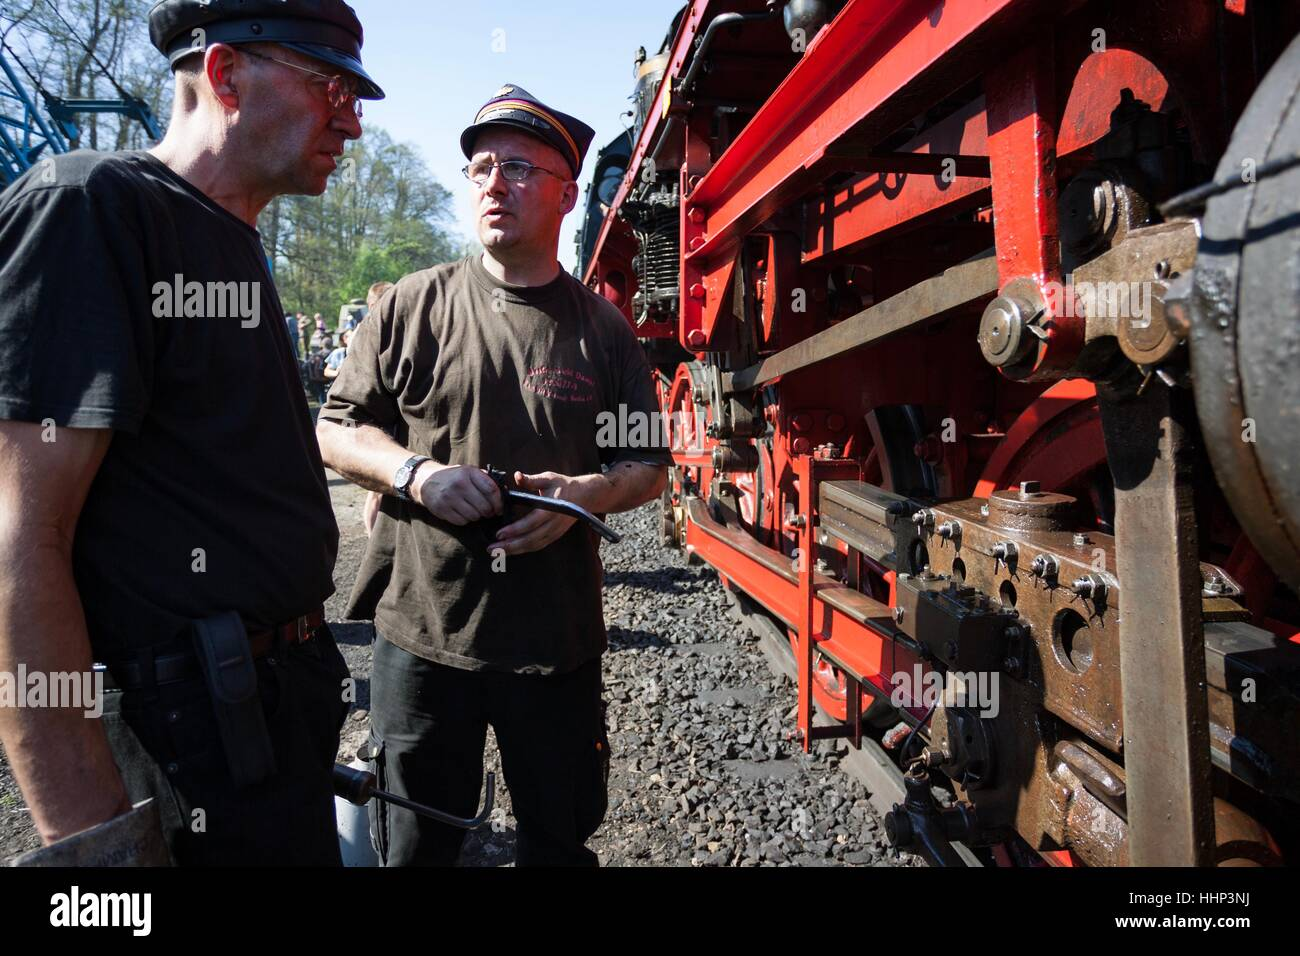 Wolsztyn, Poland - April 28, 2012 Parade of railway locomotives in Wolsztyn in western Poland. Stock Photo